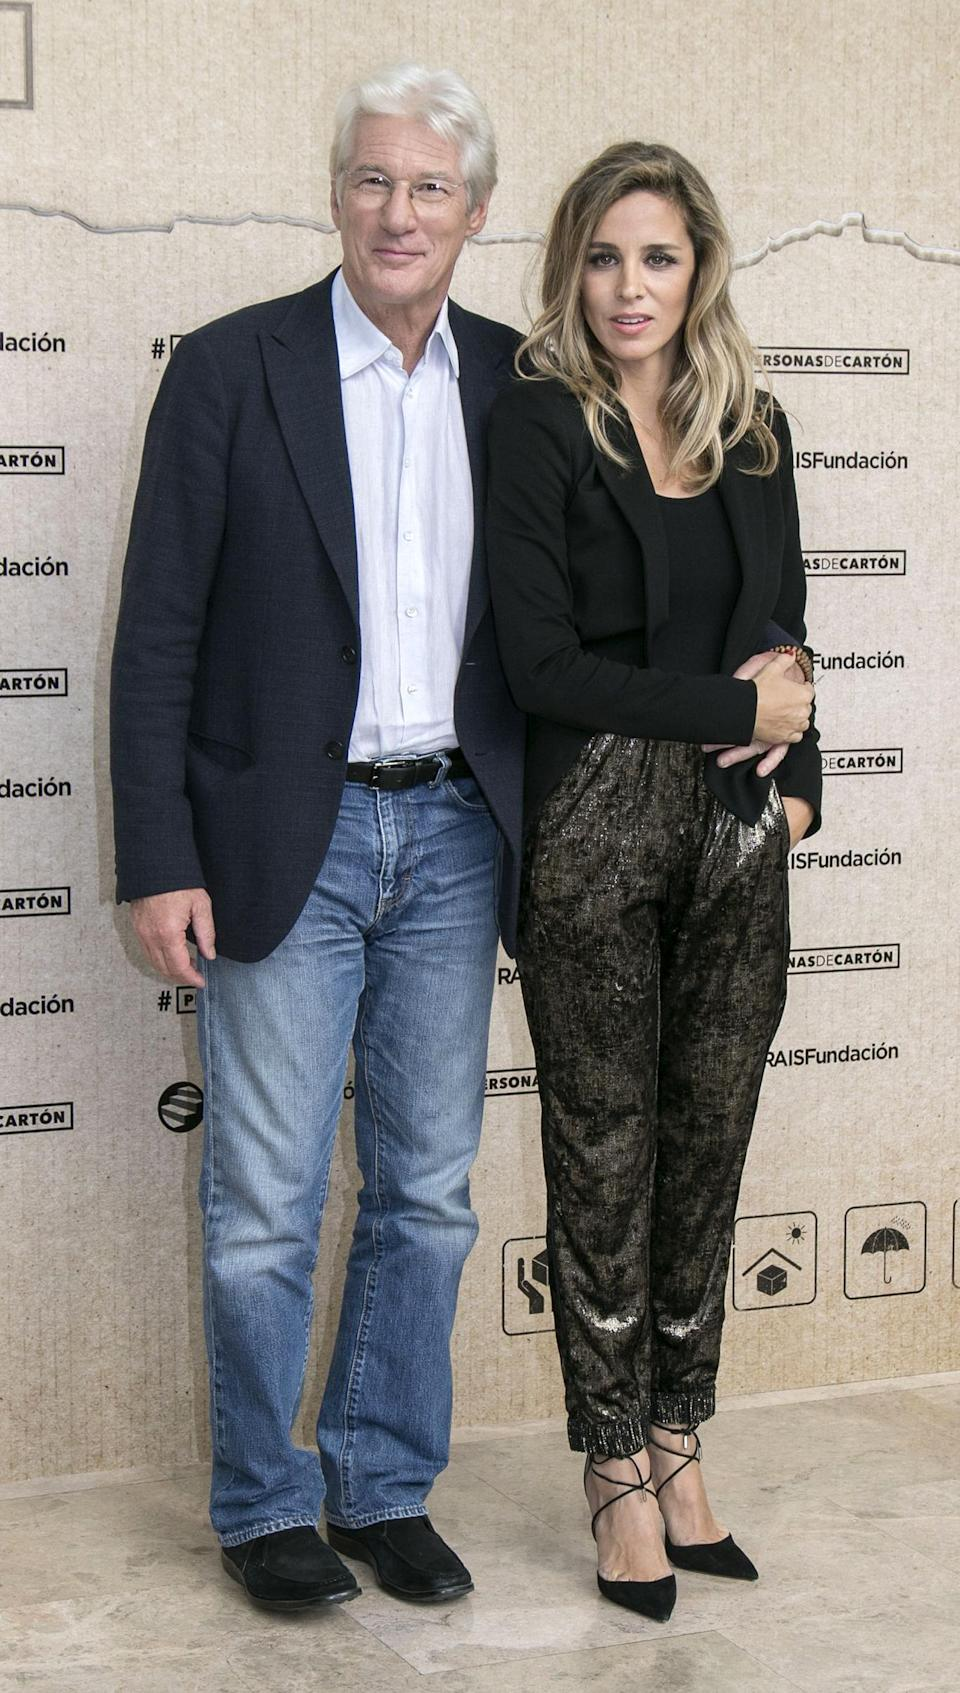 Richard Gere and Alejandra Silva at a charity event in Spain in 2016. (Photo: Europa Press/Europa Press via Getty Images)pe